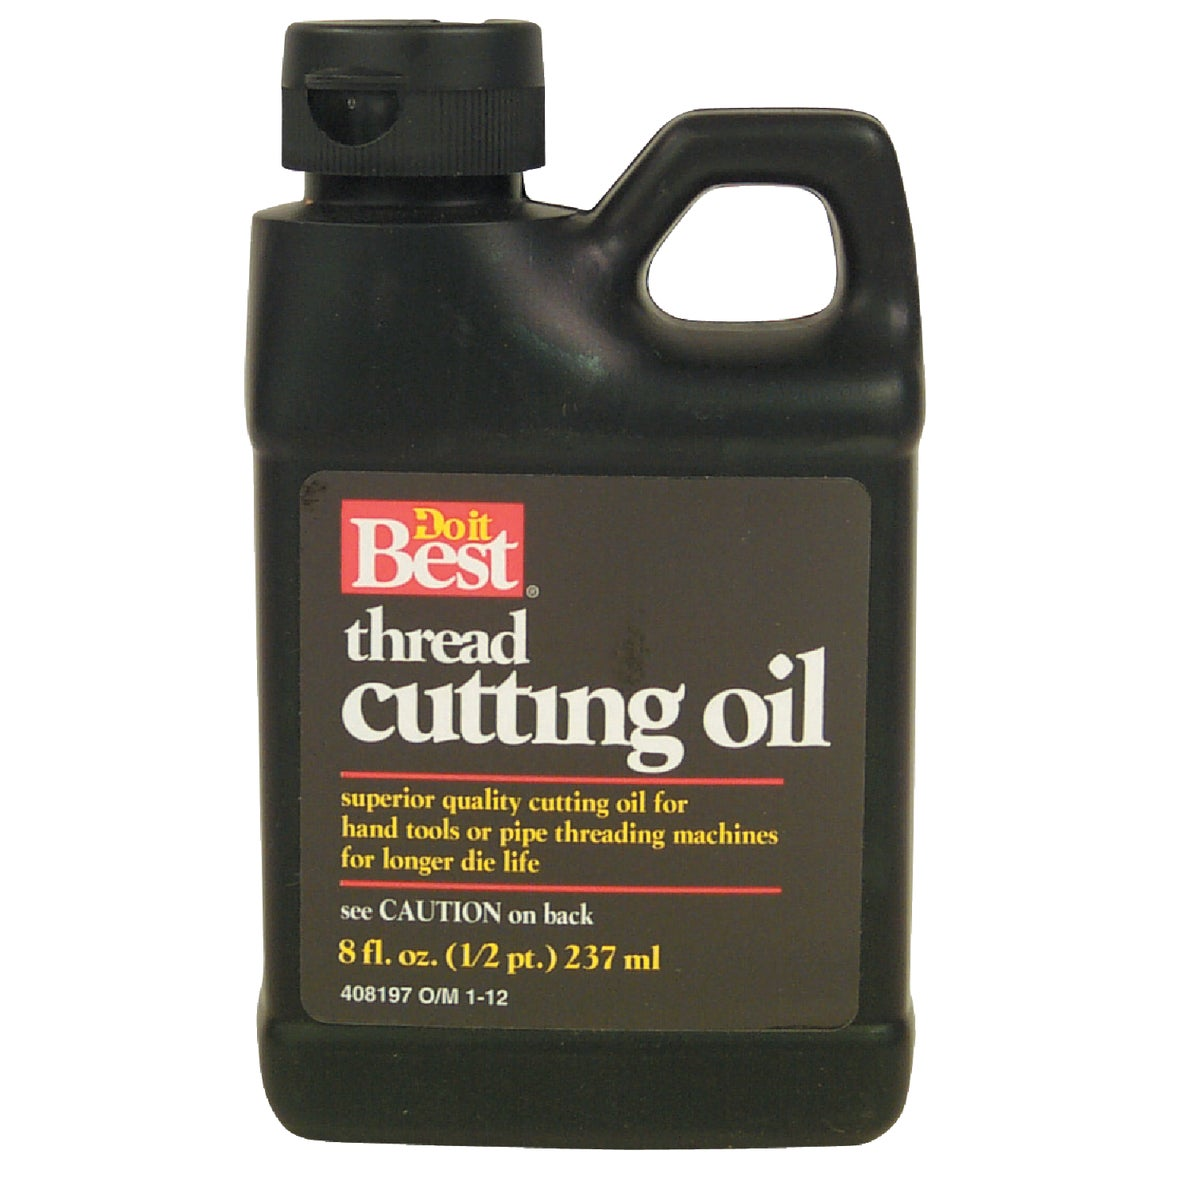 1/2PINT THREADCUT OIL - 016036 by Wm H Harvey Co